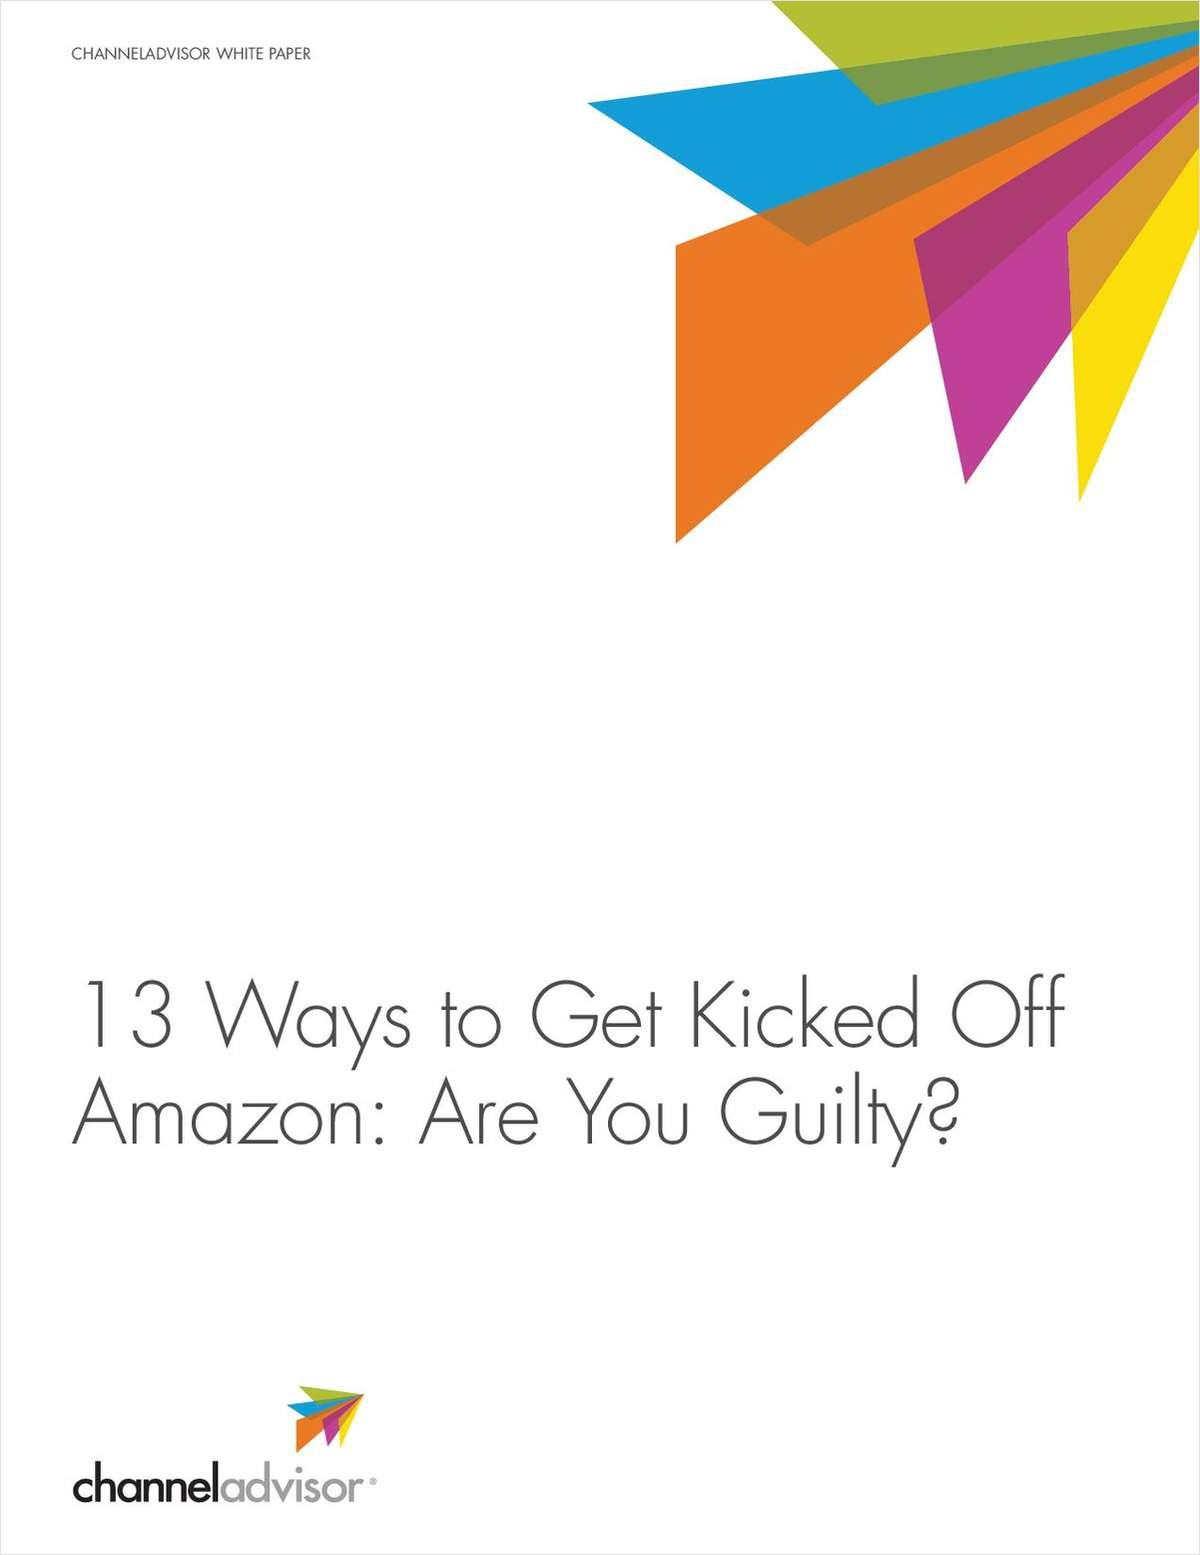 13 Ways to Get Kicked Off Amazon. Are You Guilty?